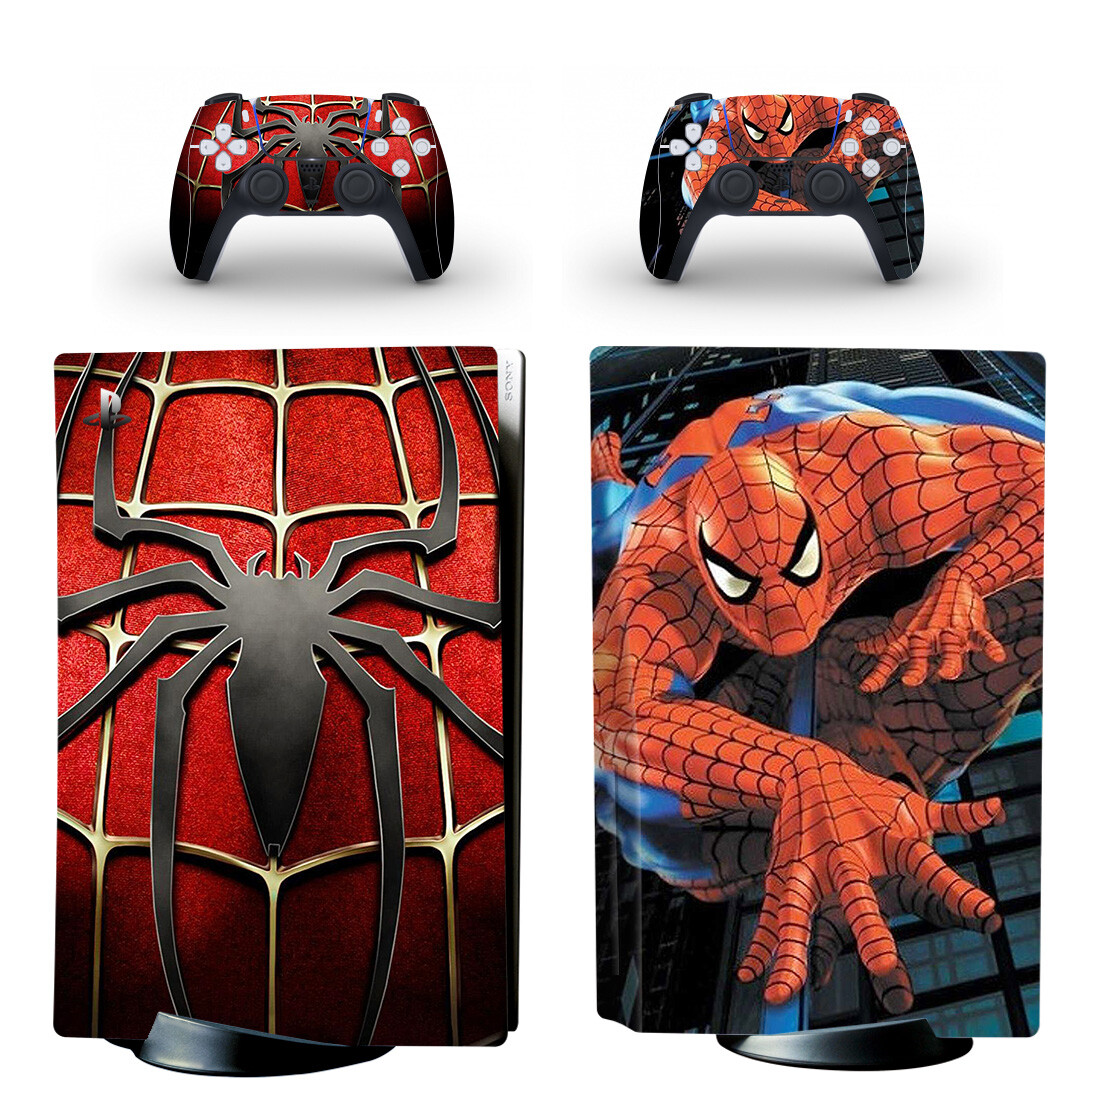 Spiderman Sticker Decal For PlayStation 5